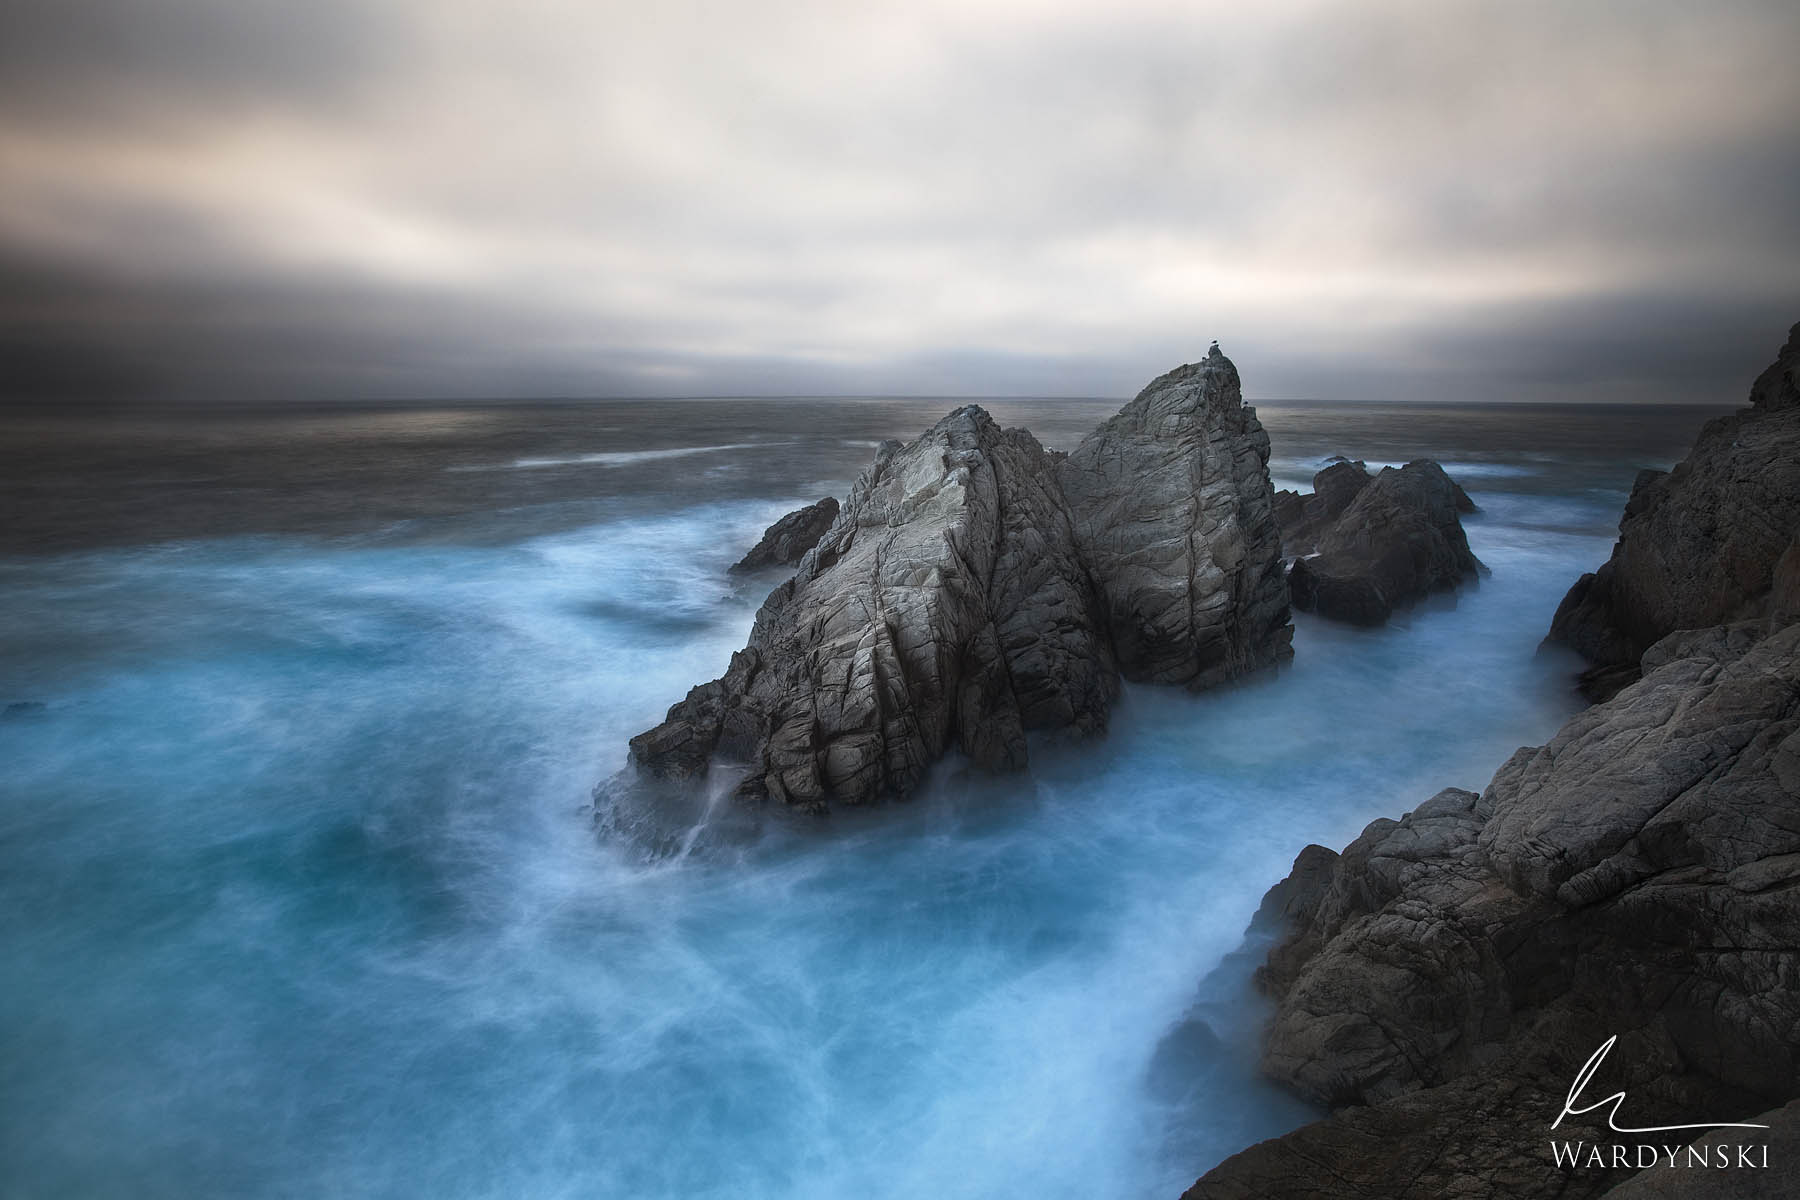 Fine Art Print | Limited Edition of 100  Like Sirens singing, three beautiful rocks sit firmly planted in the cool blue waters...